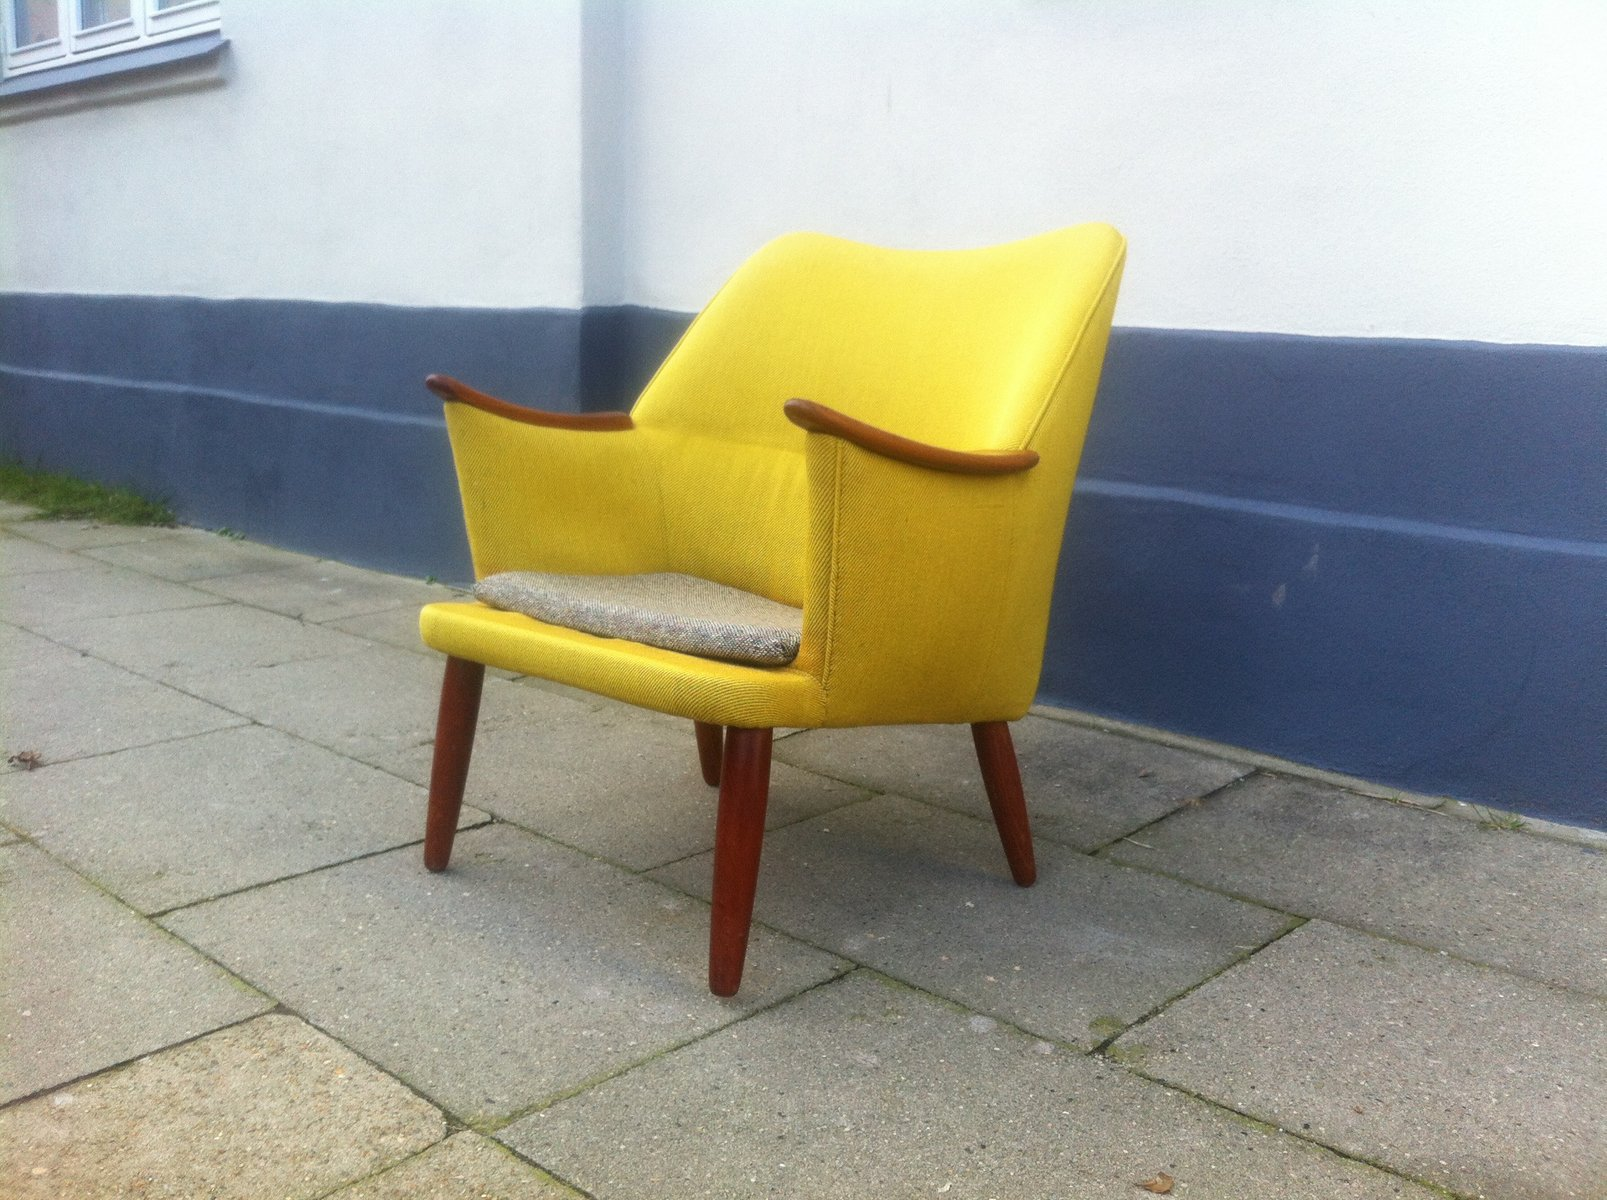 Danish Mid Century Modern Easy Chair In Yellow Wool With Teak Accents,  1950s For Sale At Pamono